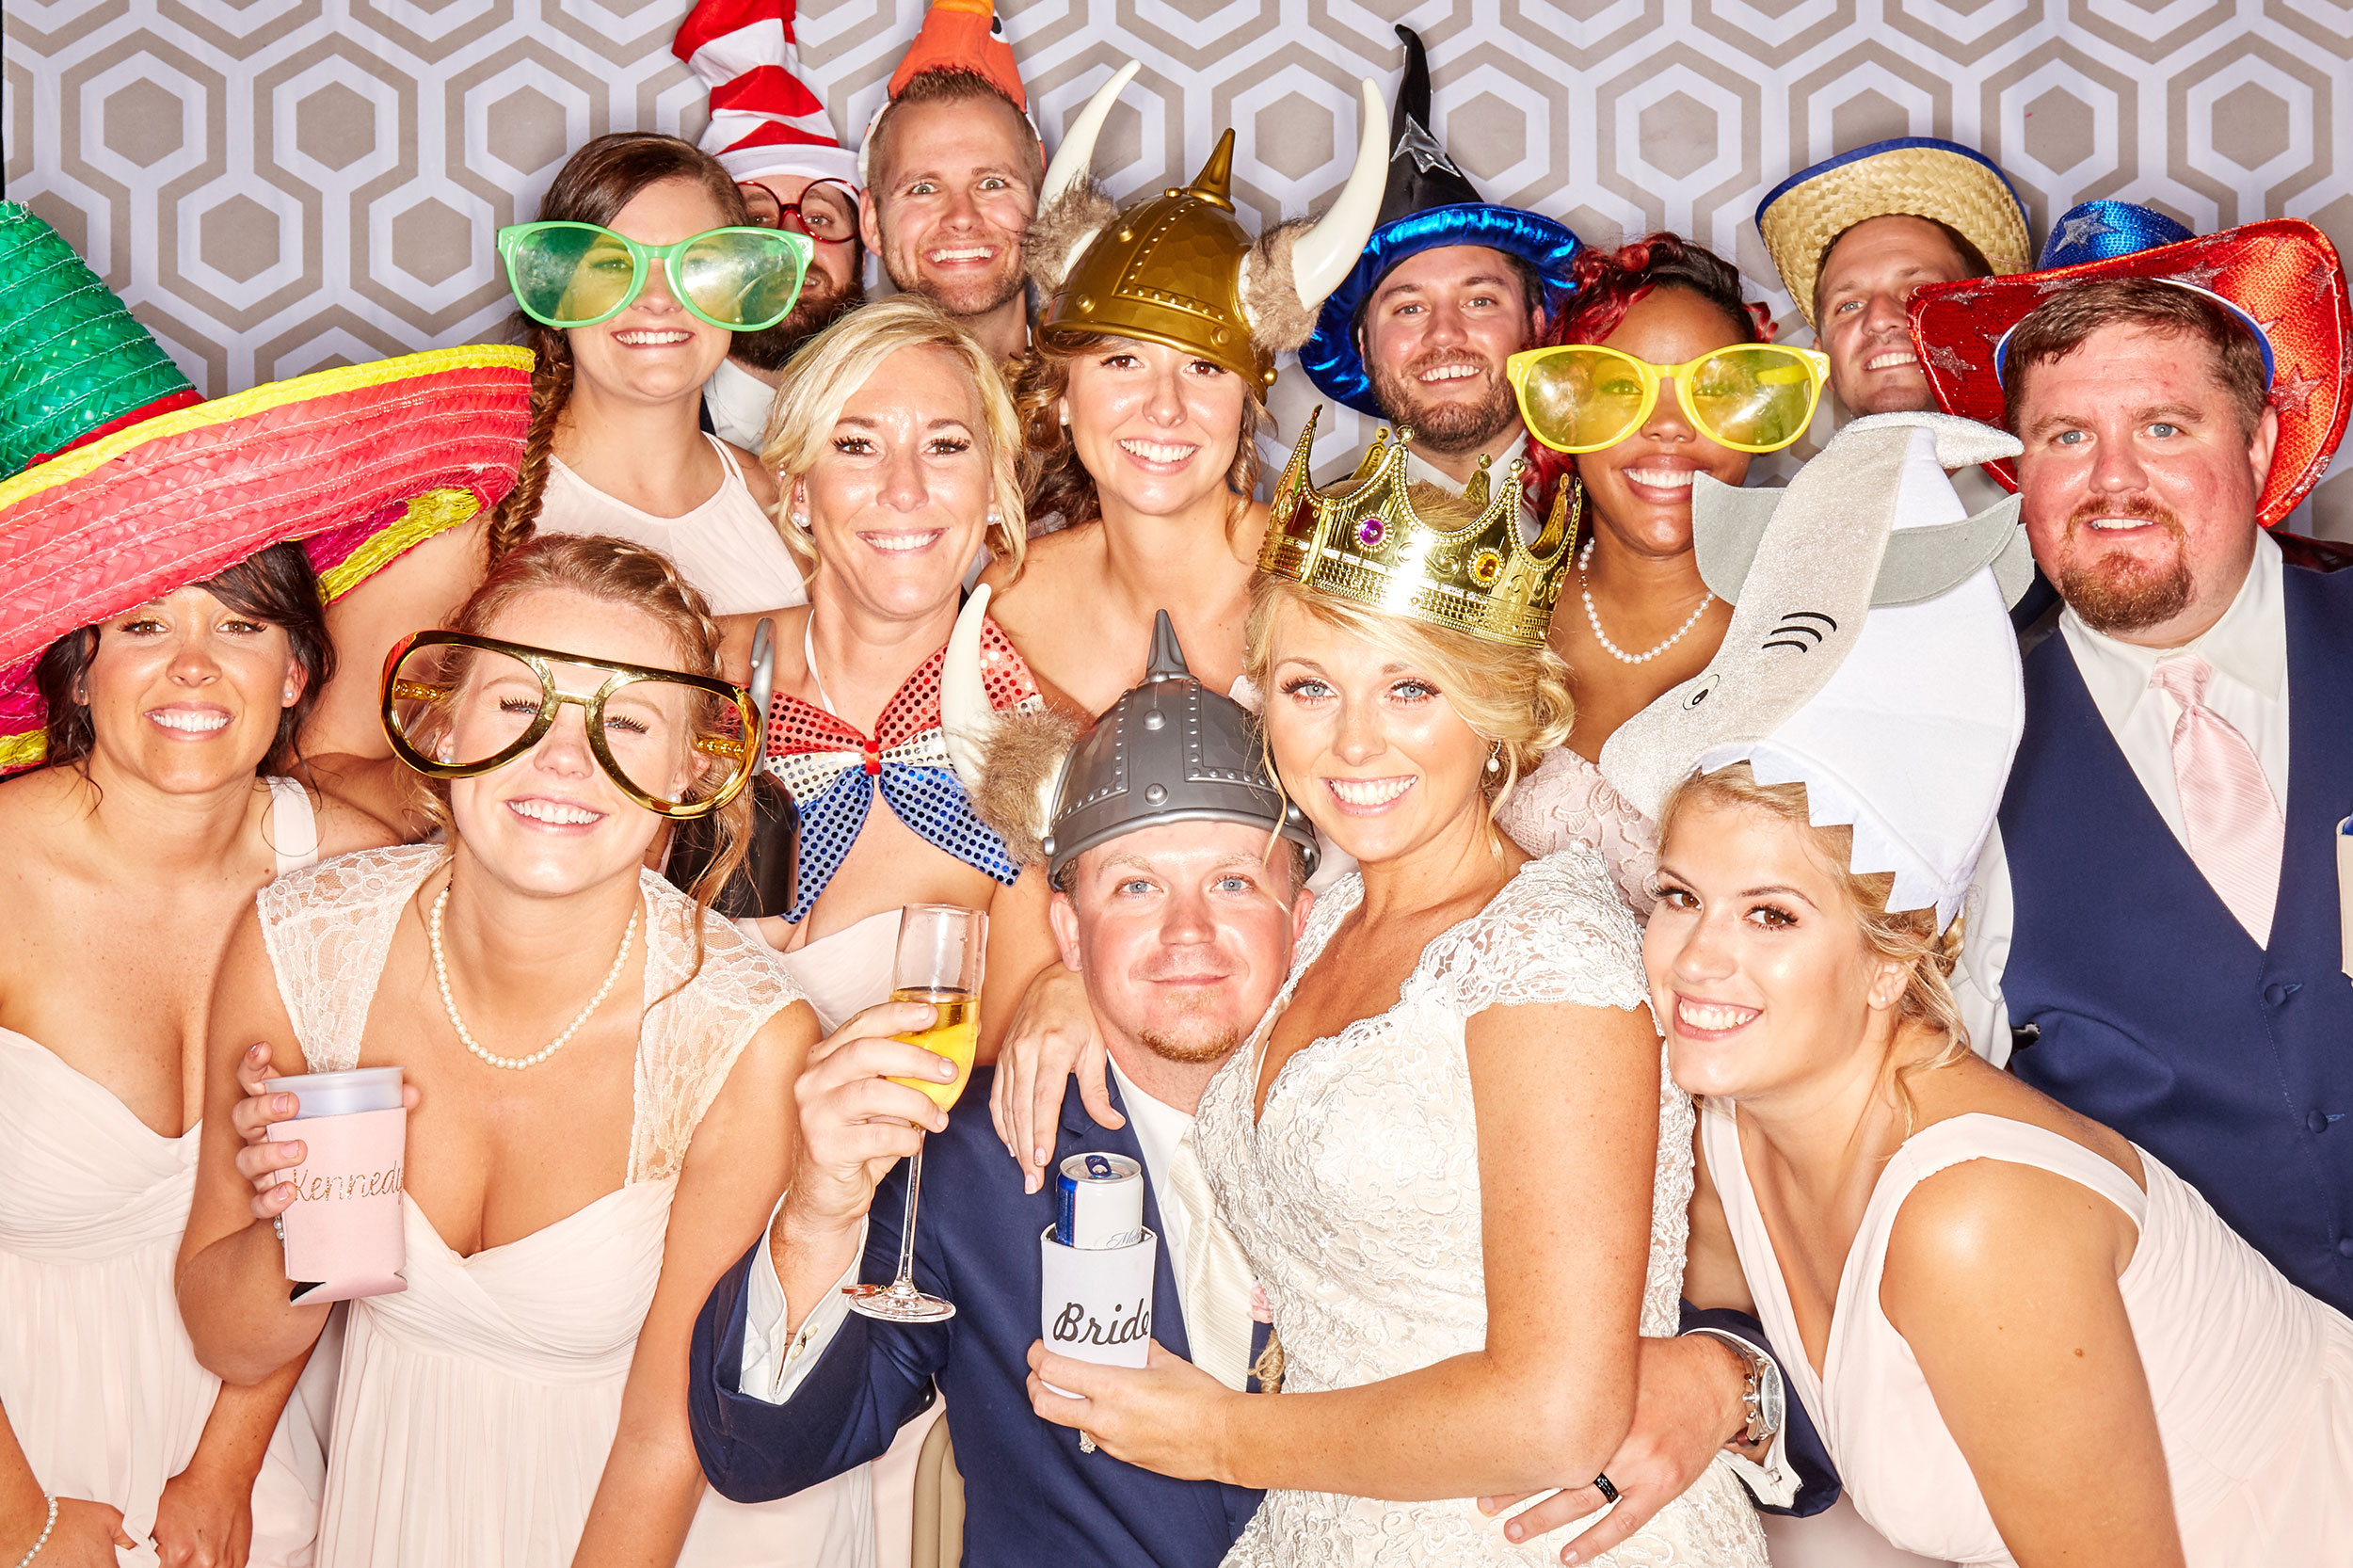 louisville-photo-booth-109.jpg